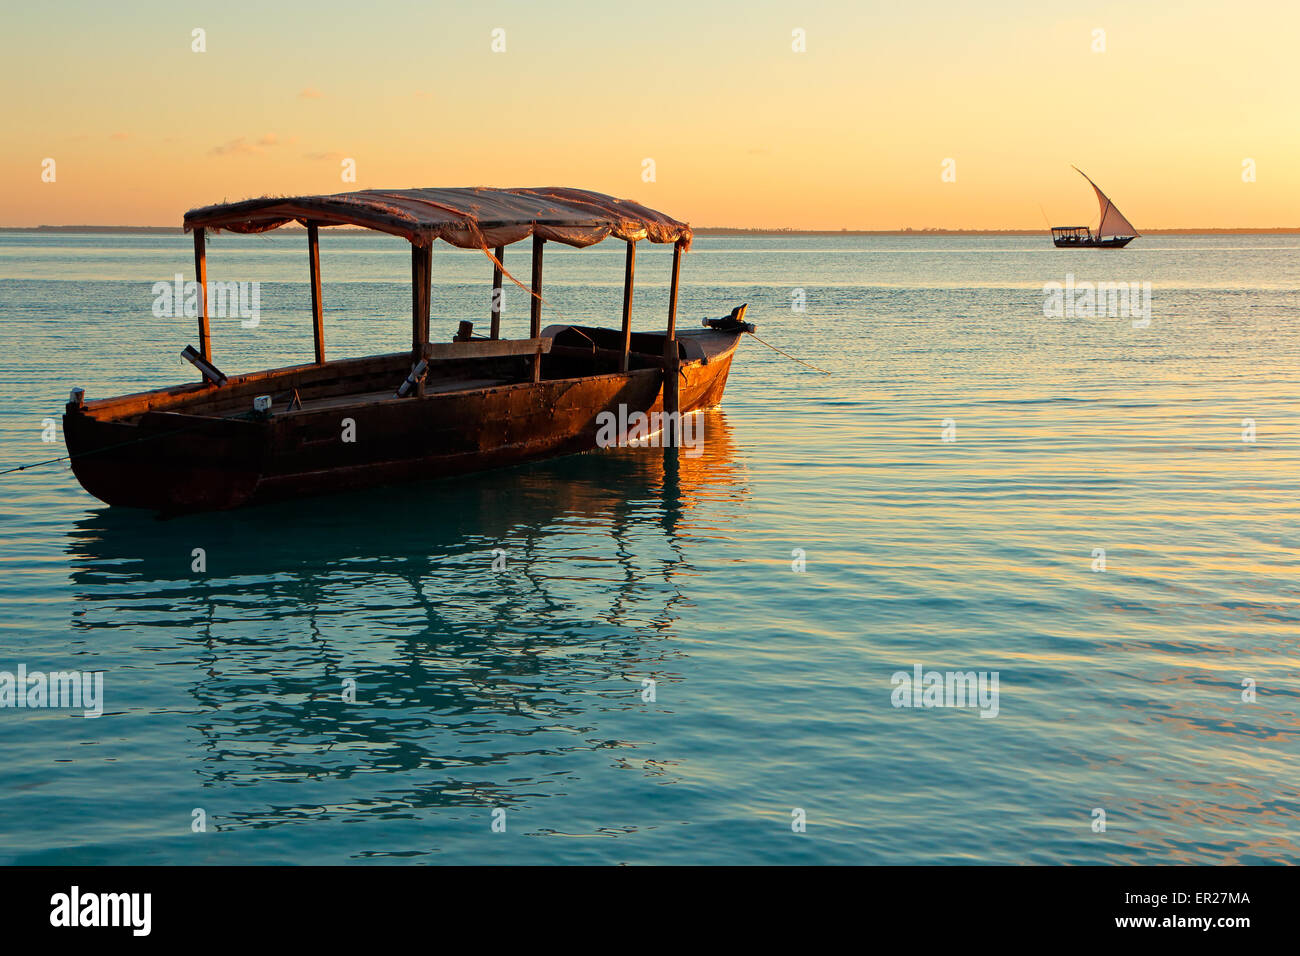 Wooden boat on water at sunset, Zanzibar island - Stock Image